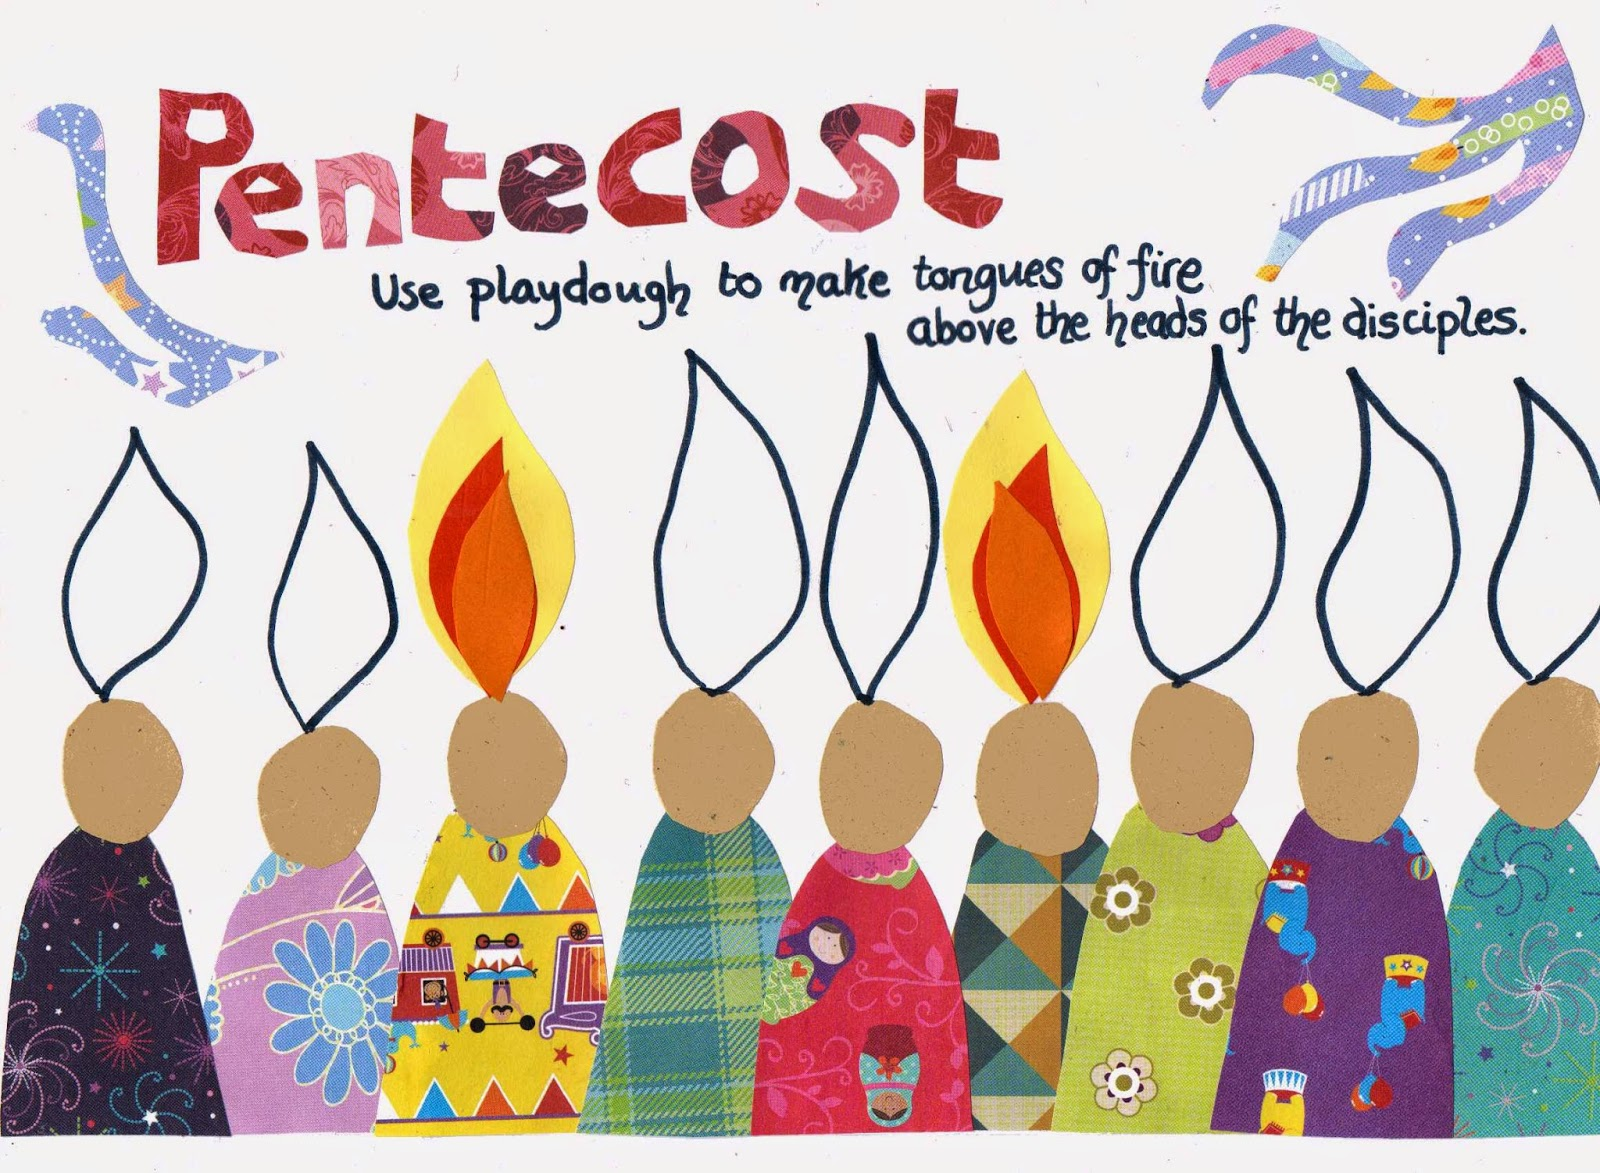 Flame creative children 39 s ministry pentecost play dough mat for Holy spirit crafts for sunday school